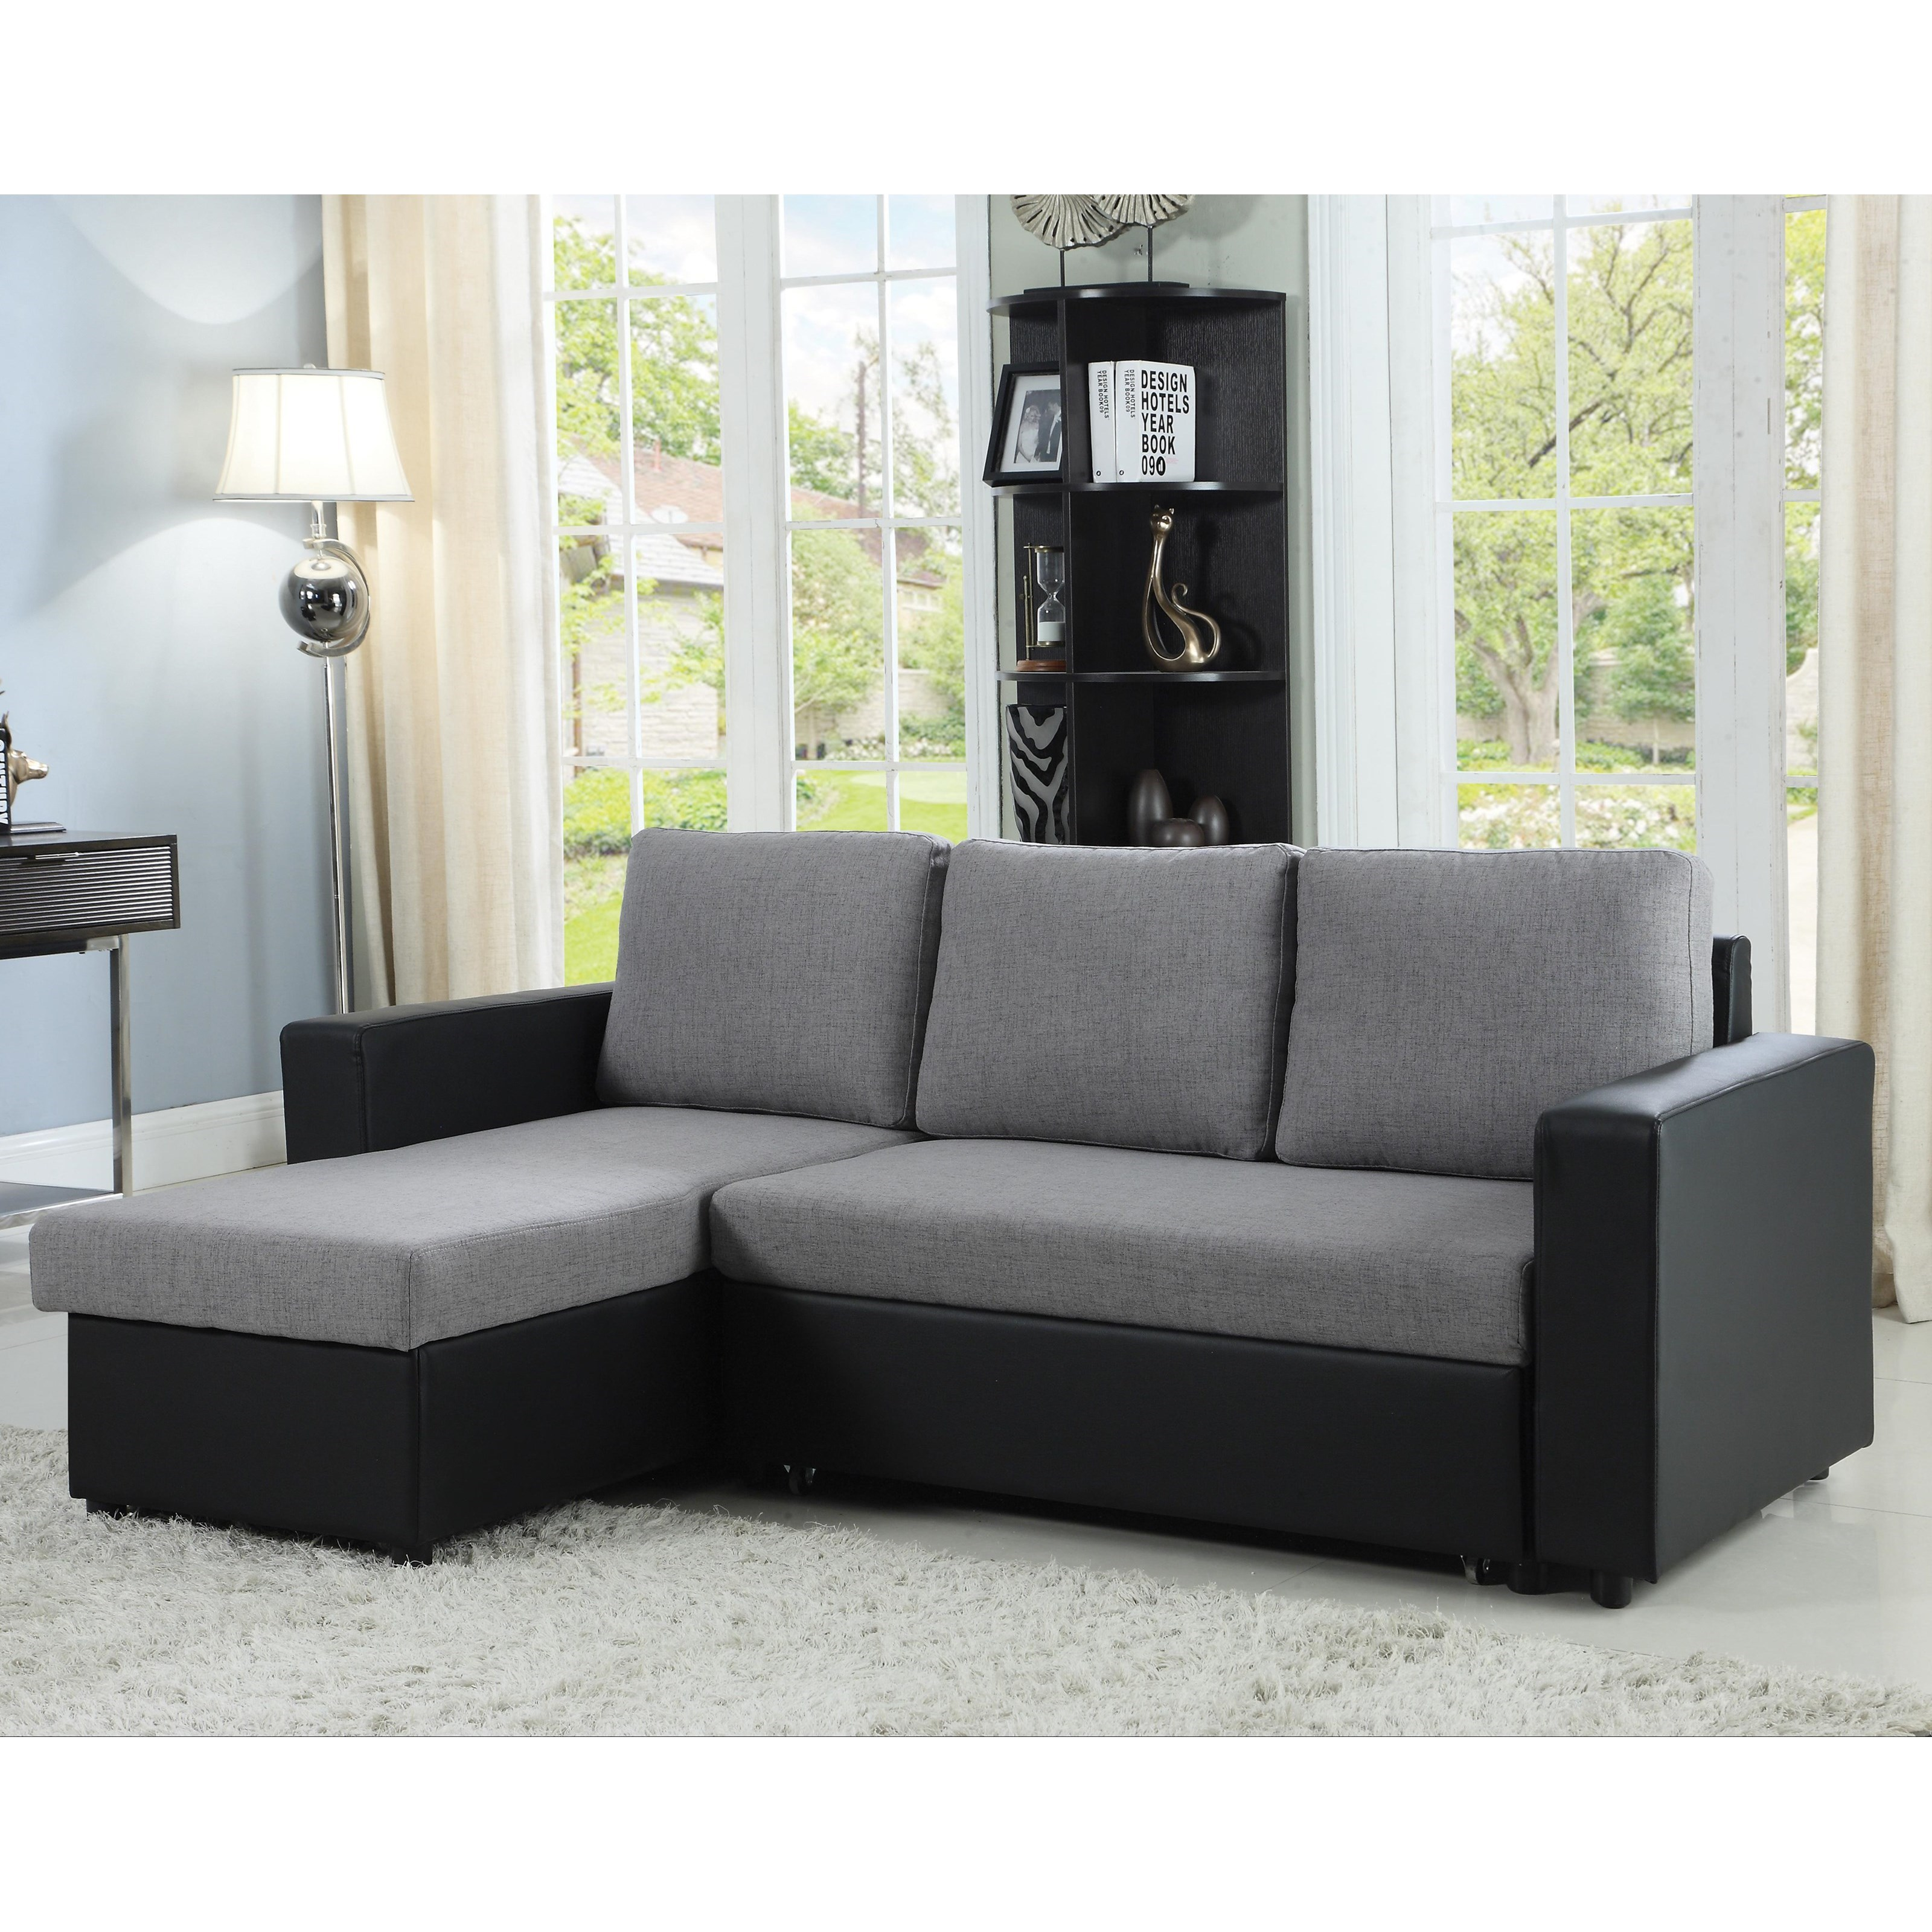 Baylor Sectional Sofa by Coaster at Rife's Home Furniture